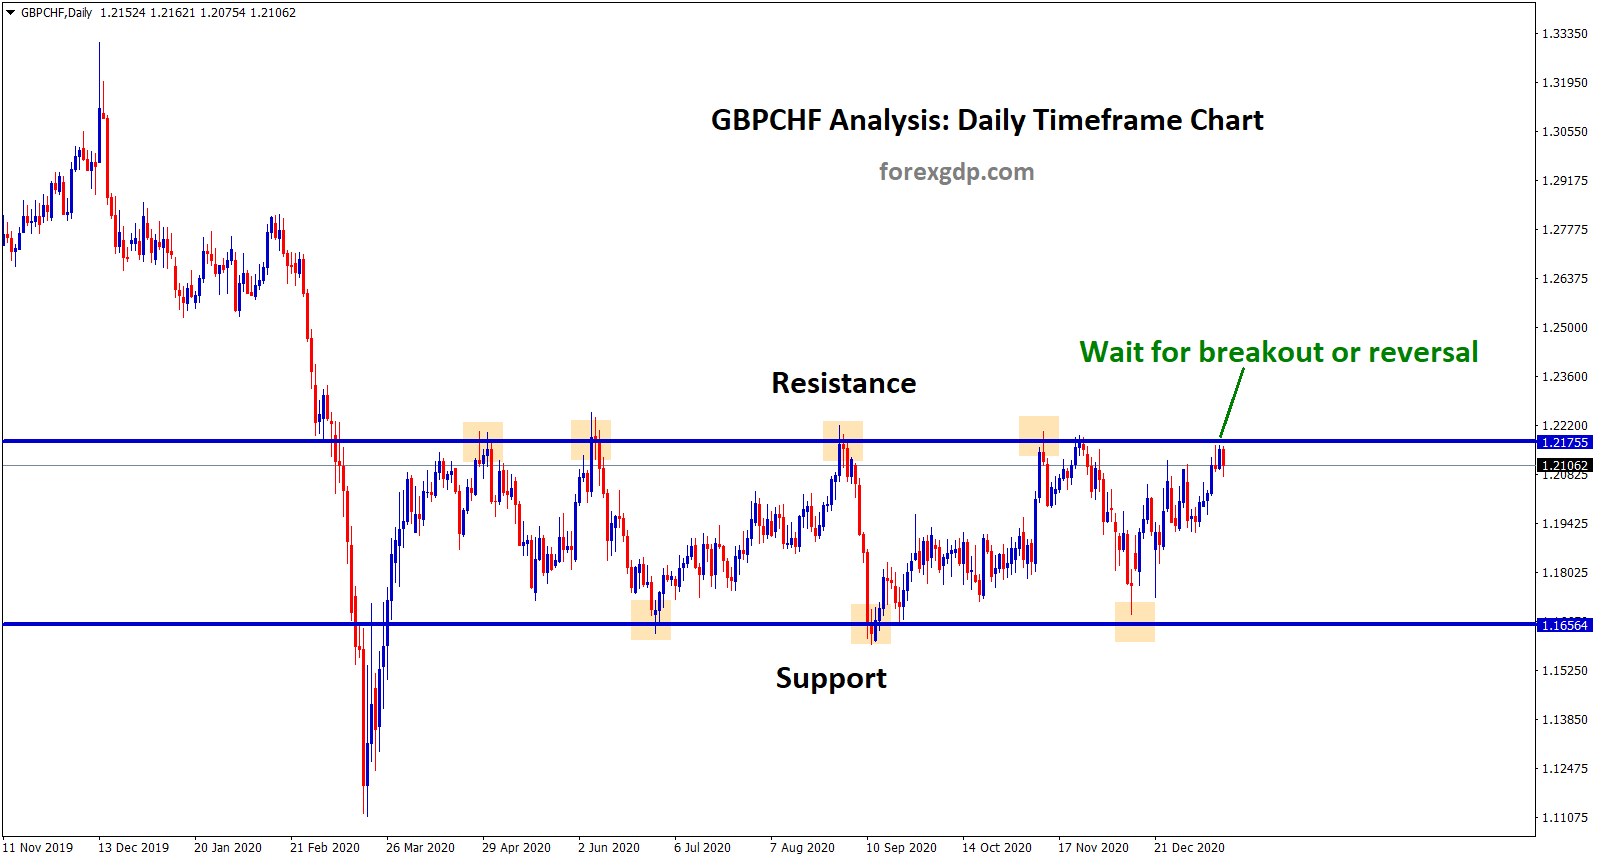 gbpchf at the resistance level in the daily chart